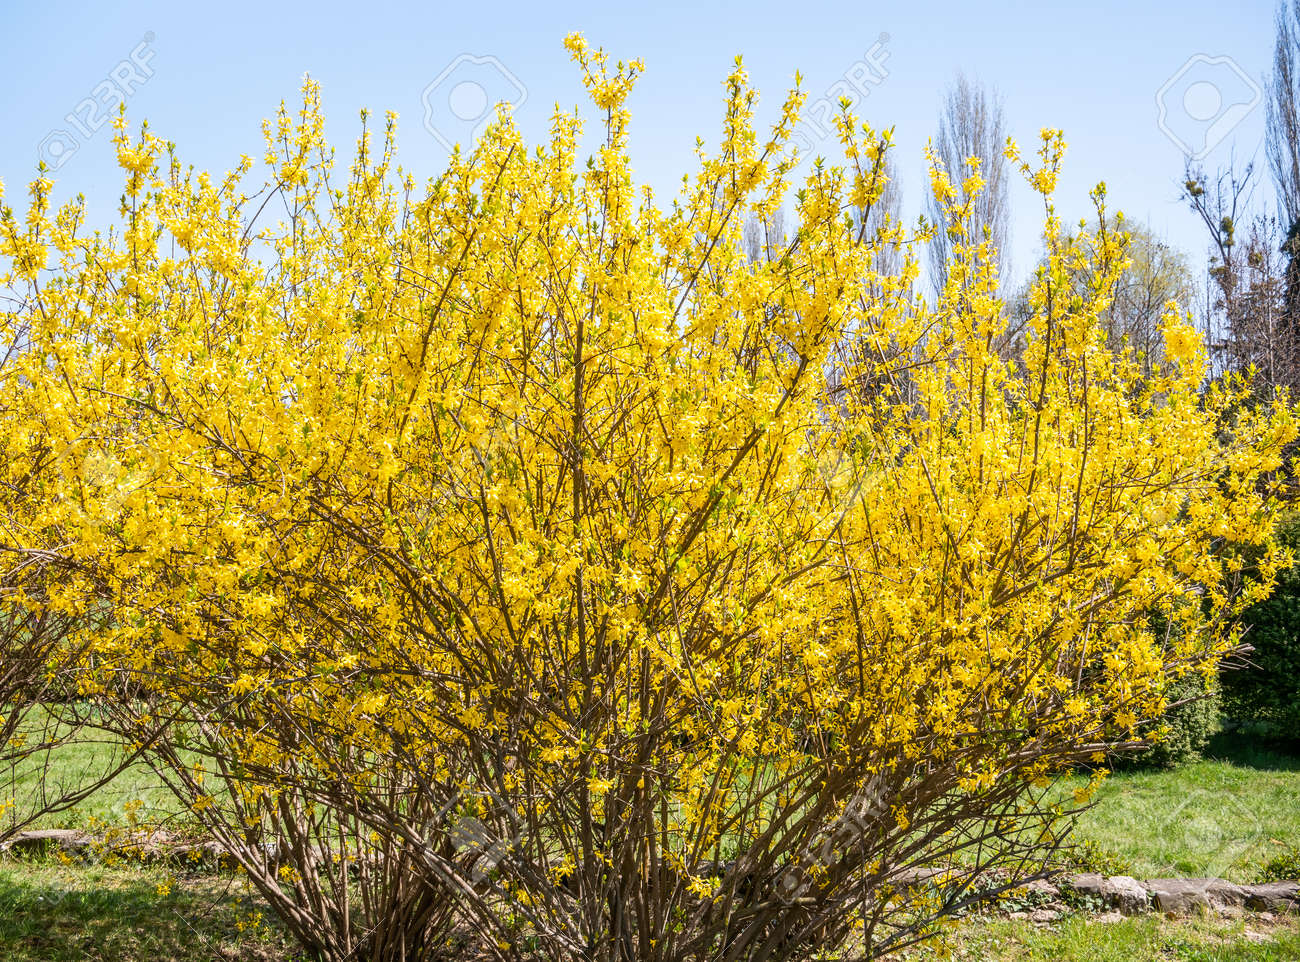 Forsythia suspensa flowers plant blooming, announcing the beginning of spring. - 169225850